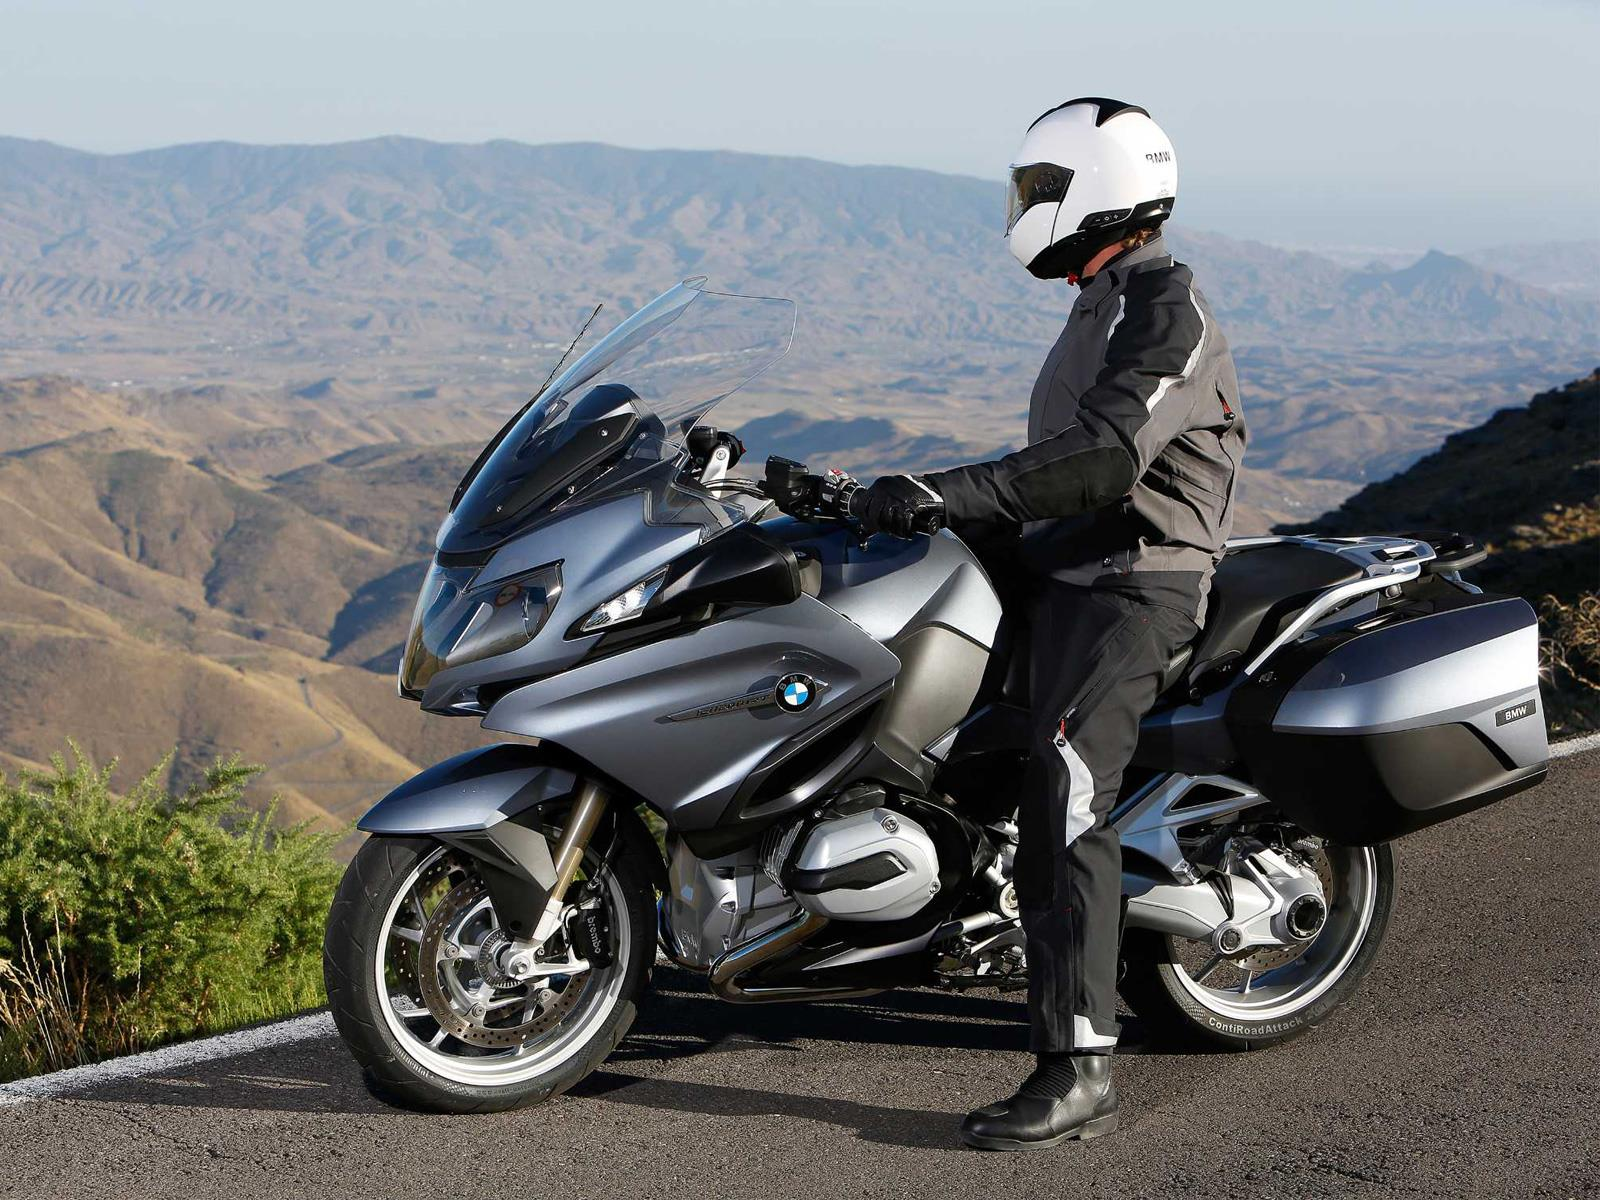 BMW R1200RT 2014 images #9057